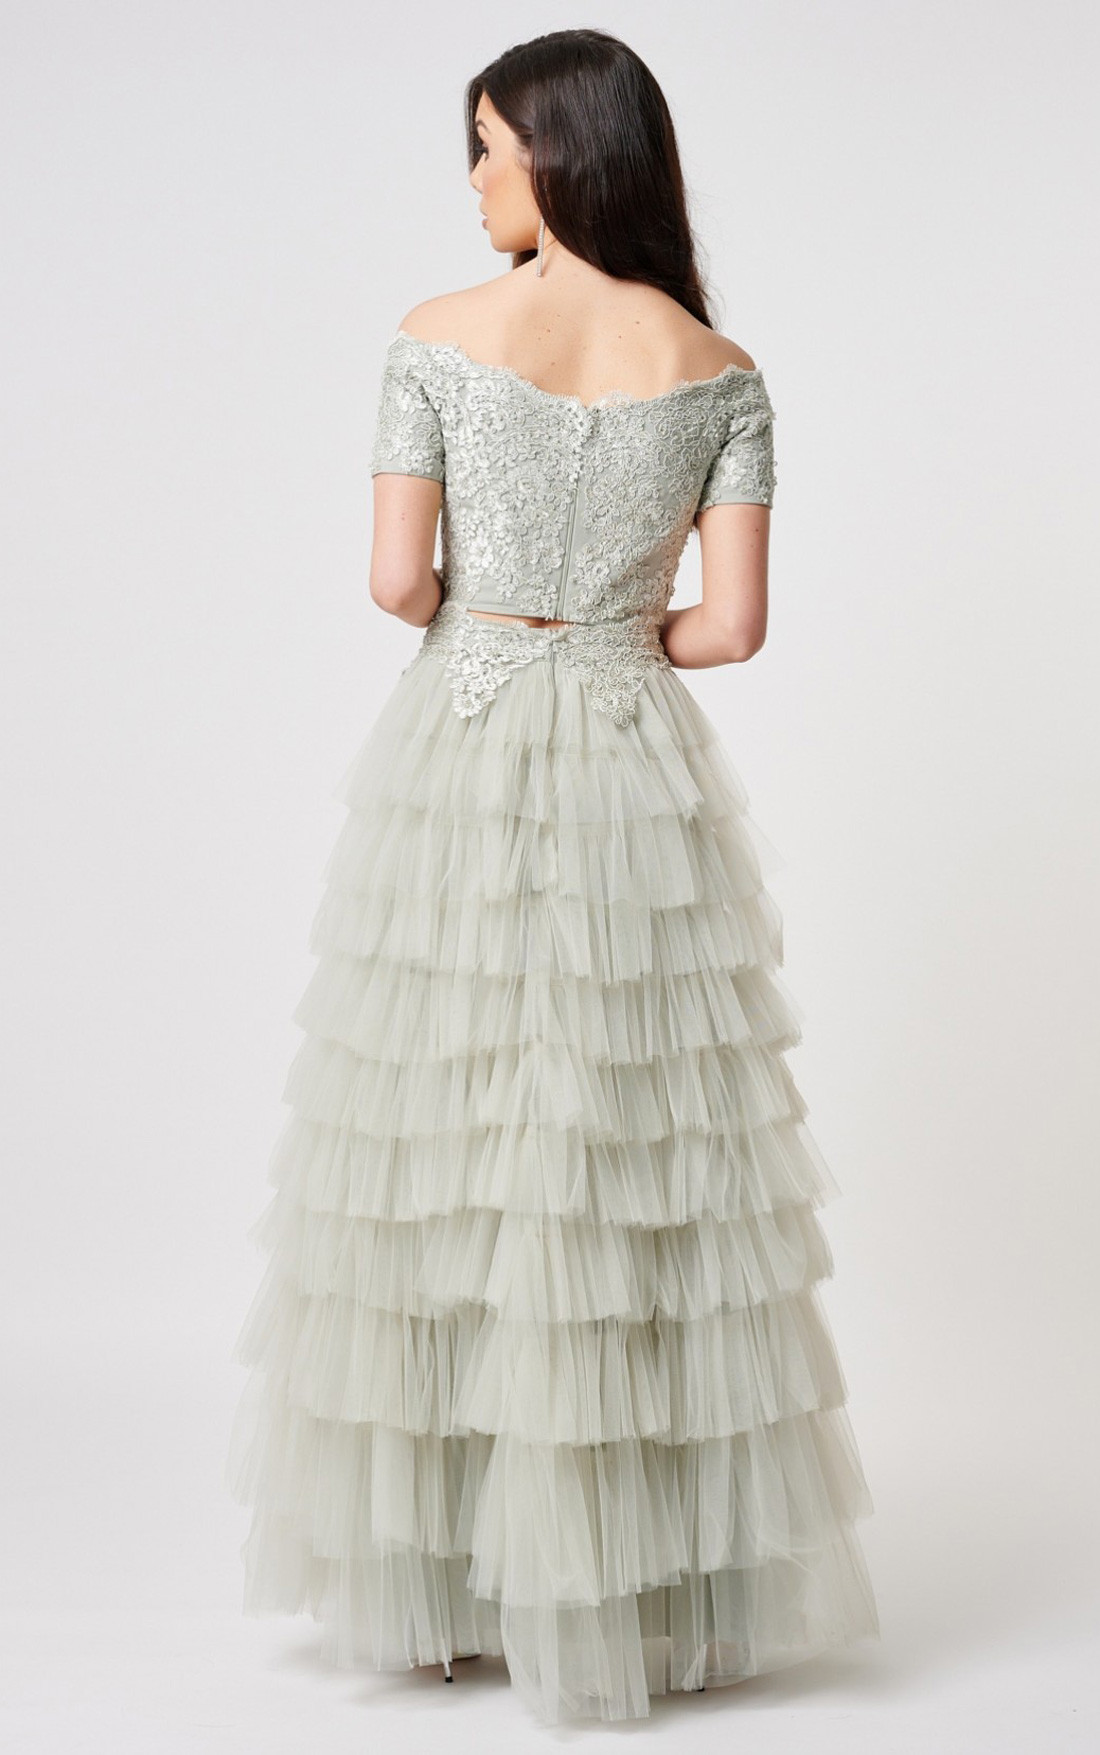 Forever Unique - Selena Sage Two Piece Floral Tulle Ballgown (MN206105)